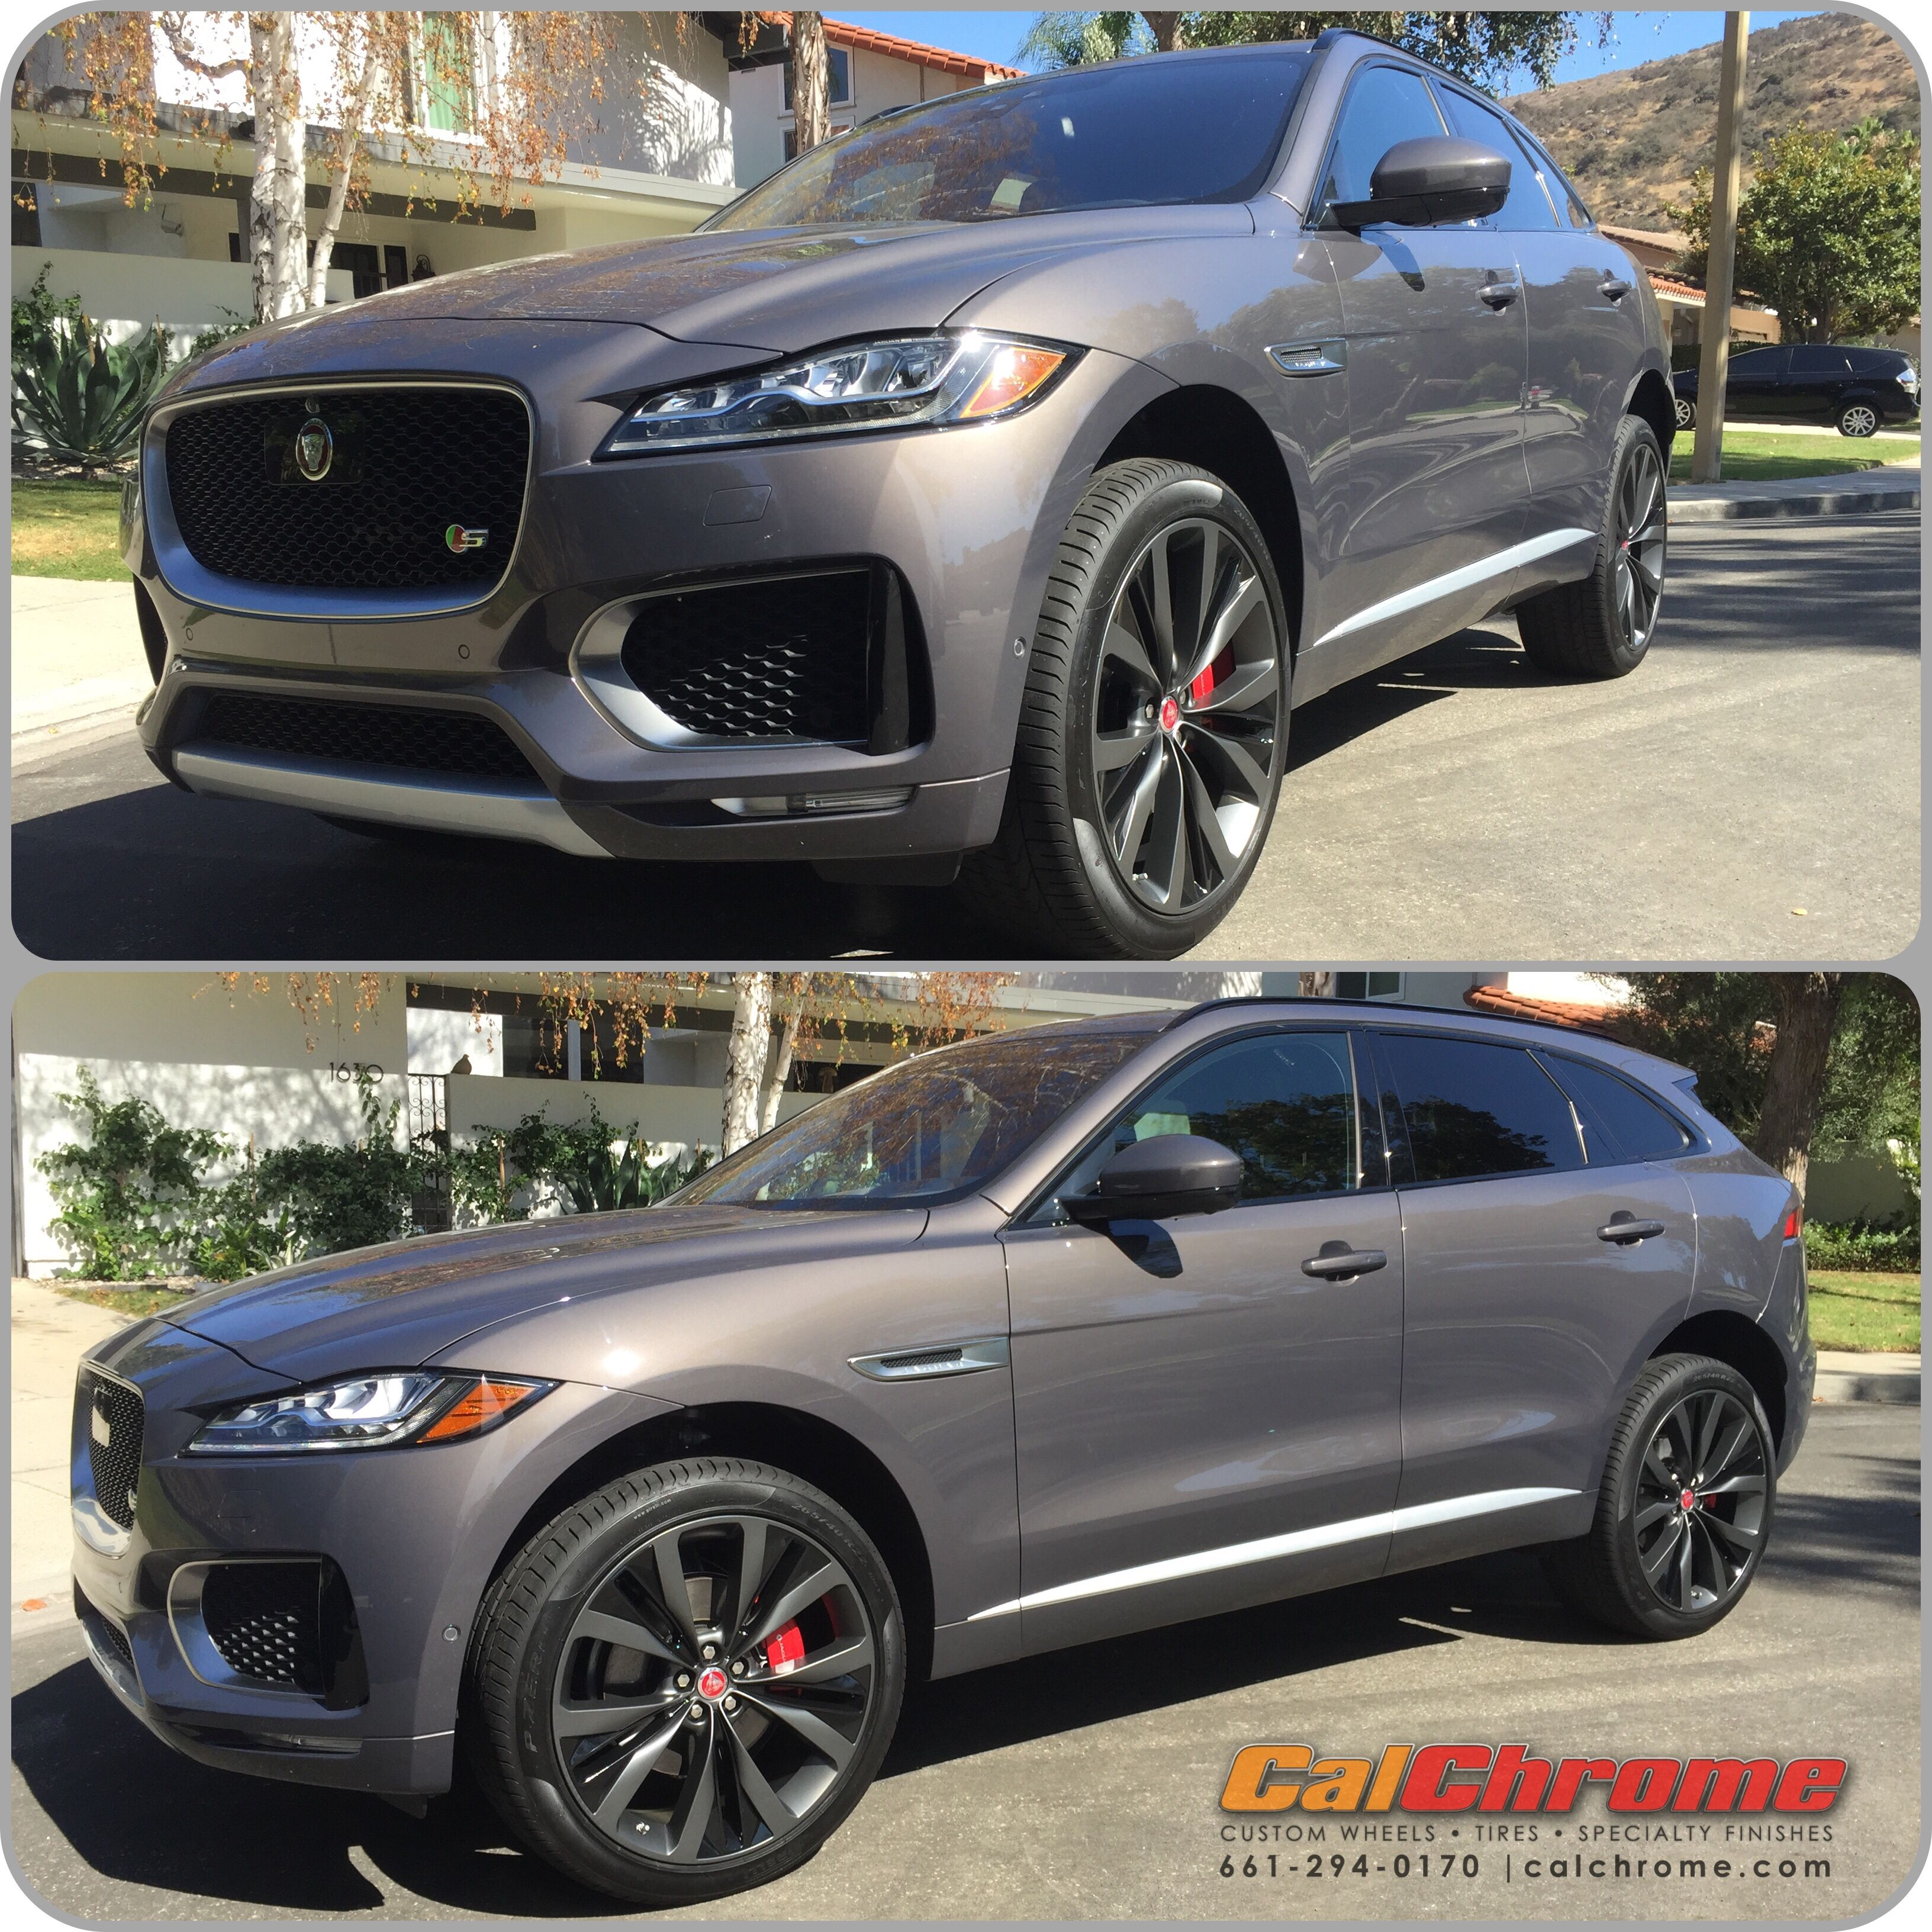 2017 Jaguar F Pace With 22 New Evo Grey Powder Coated Wheels With